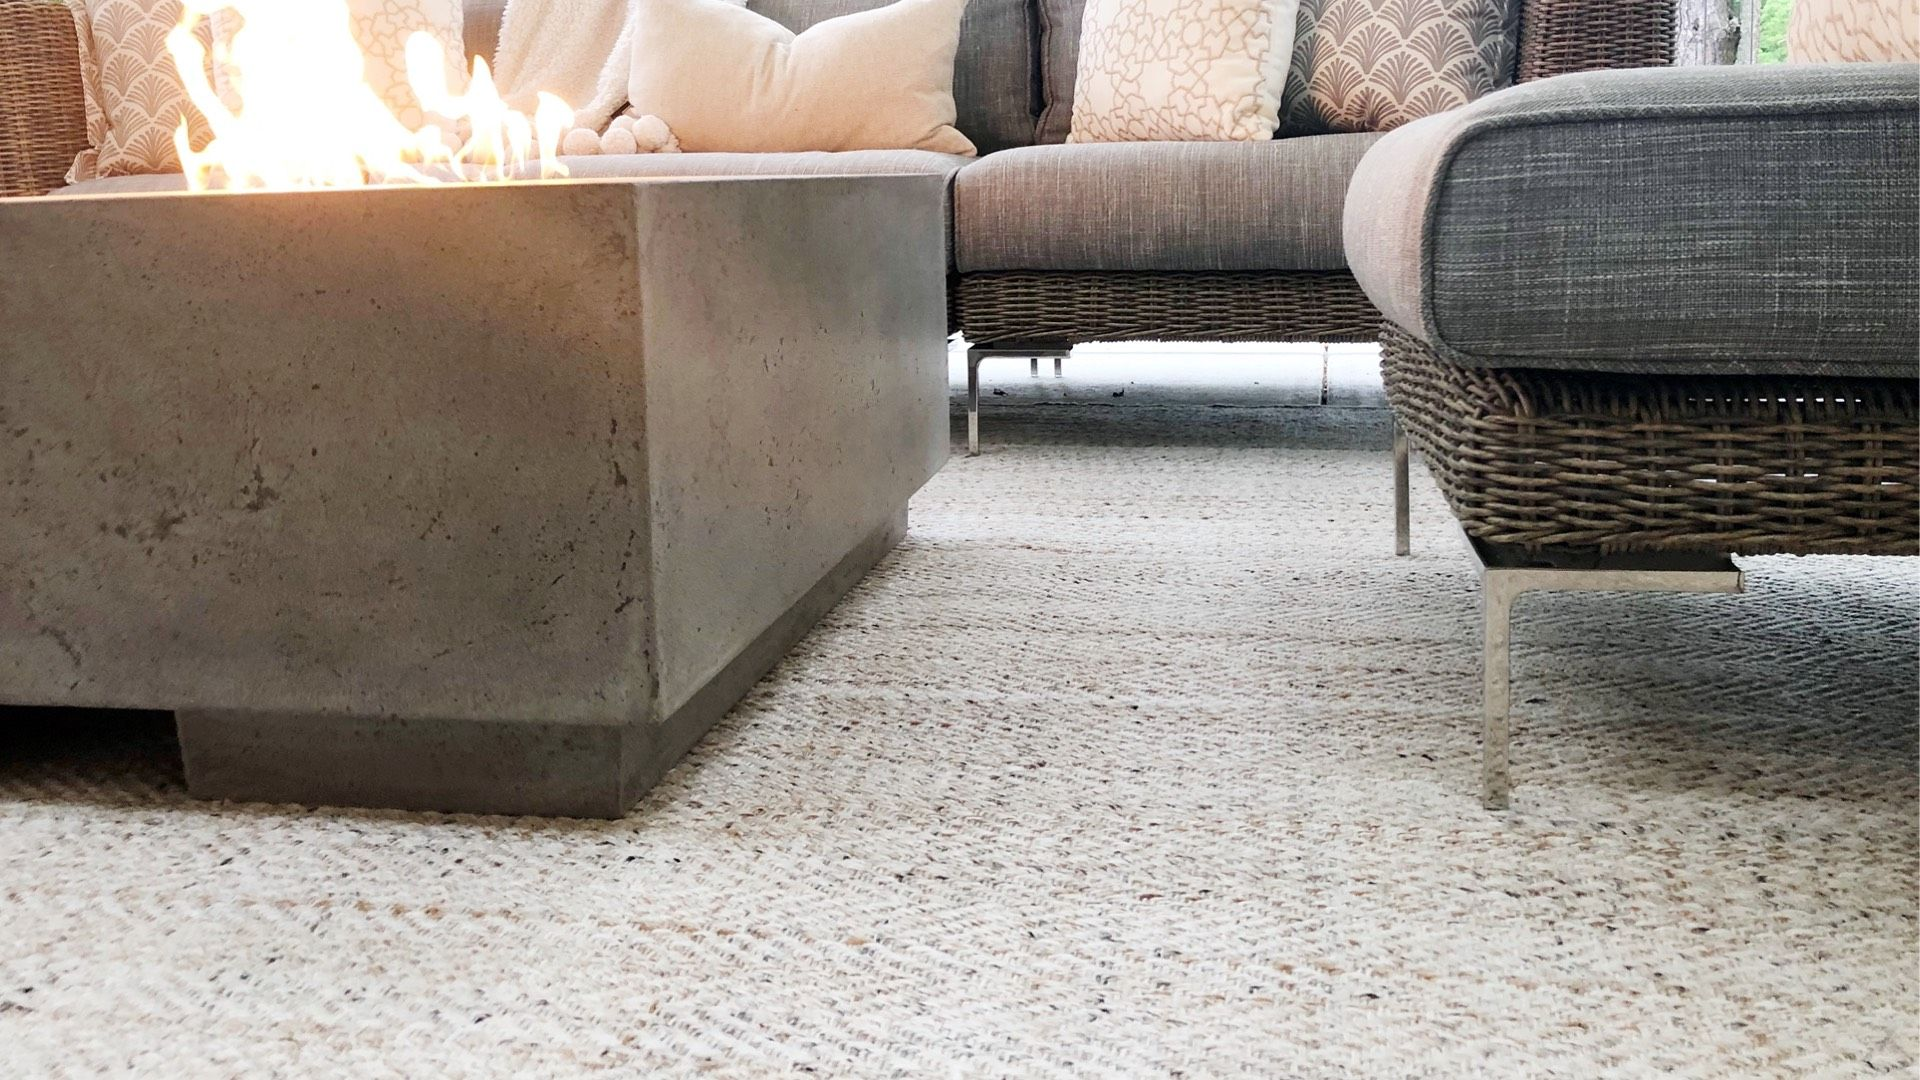 Introducing the Most Durable, Eco-Friendly Outdoor Rugs